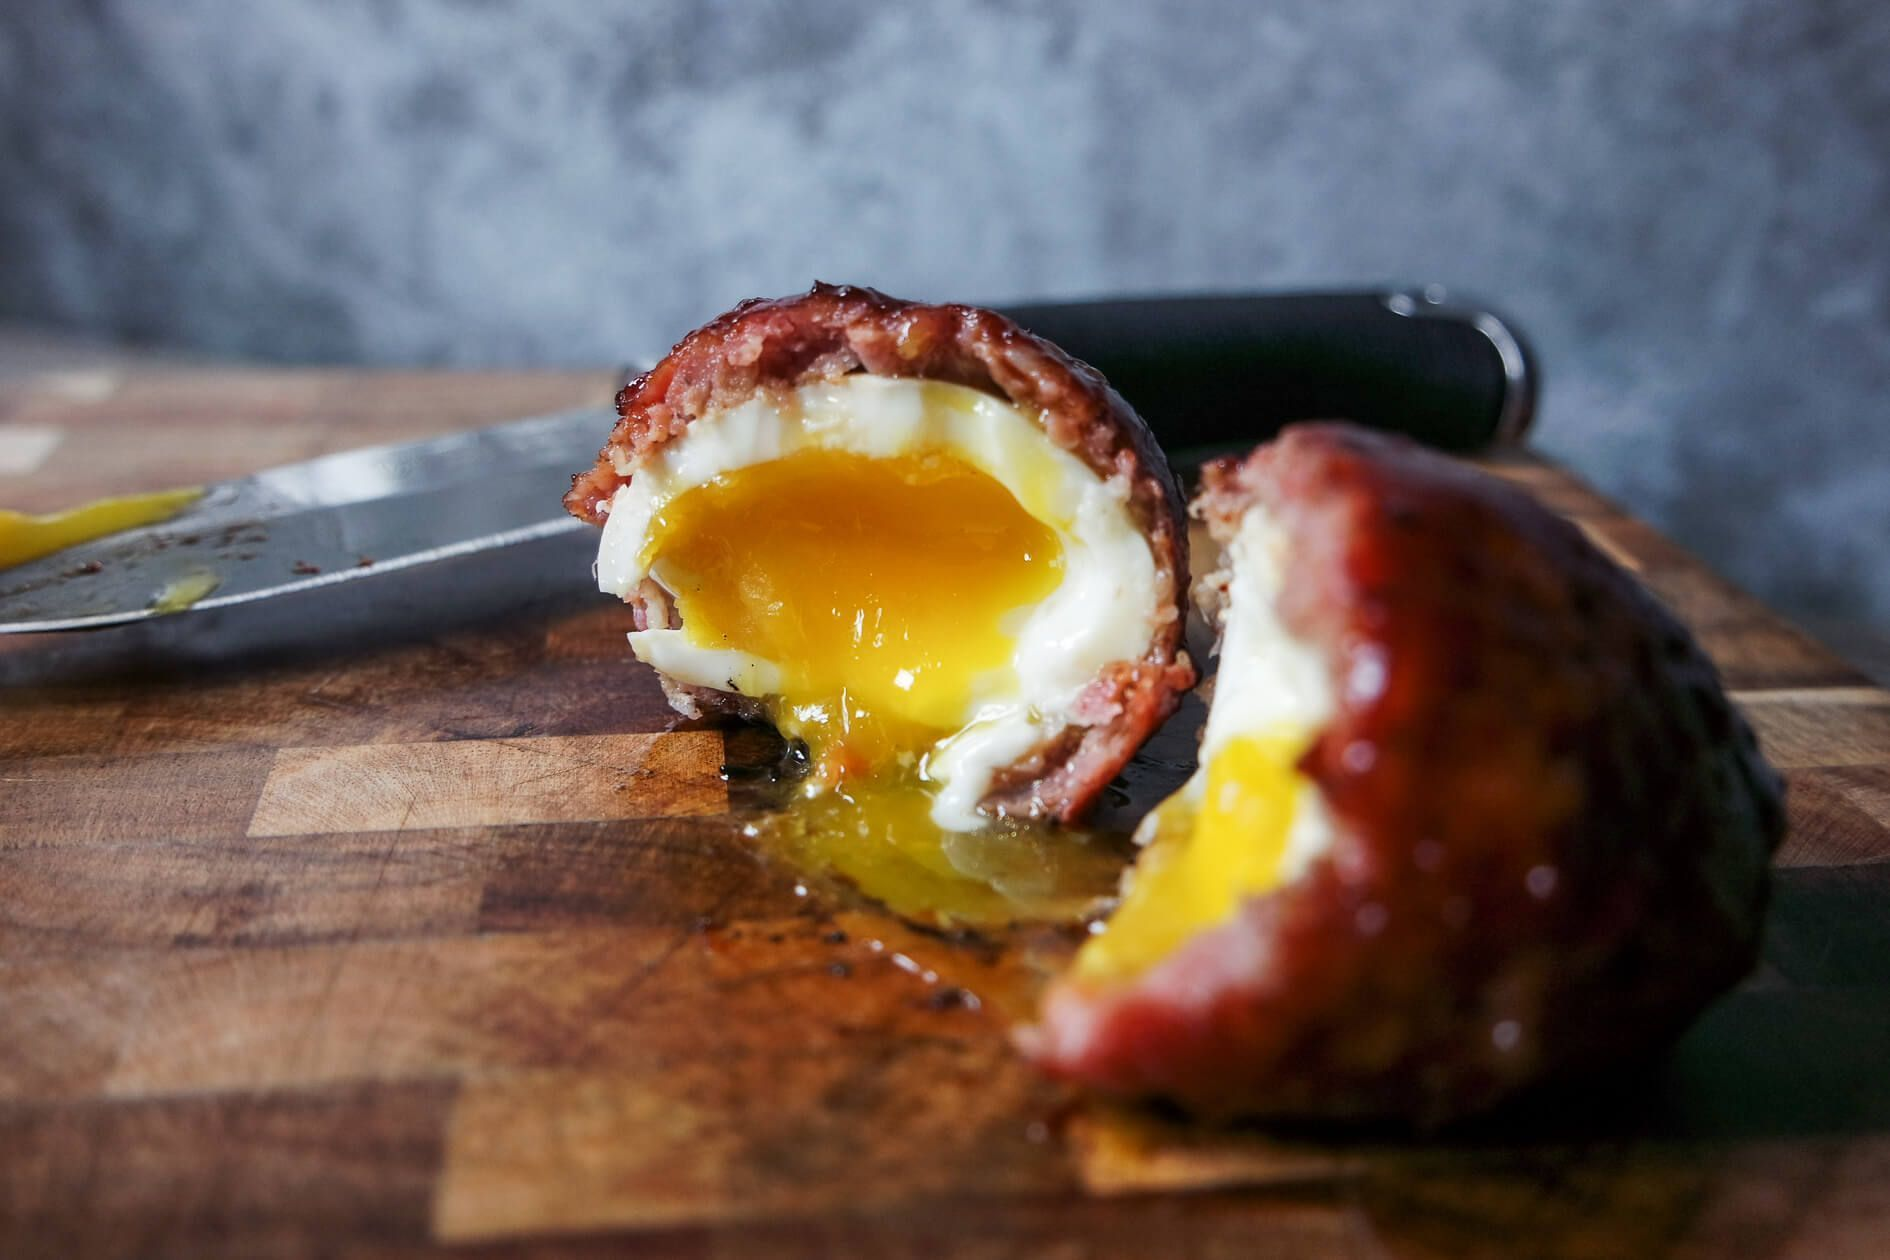 Smoked Scotch Eggs (with soft boiled yolks!) #scotcheggs How to make Smoked Soft Boiled Scotch Eggs on Jess Pryles #scotcheggs Smoked Scotch Eggs (with soft boiled yolks!) #scotcheggs How to make Smoked Soft Boiled Scotch Eggs on Jess Pryles #scotcheggs